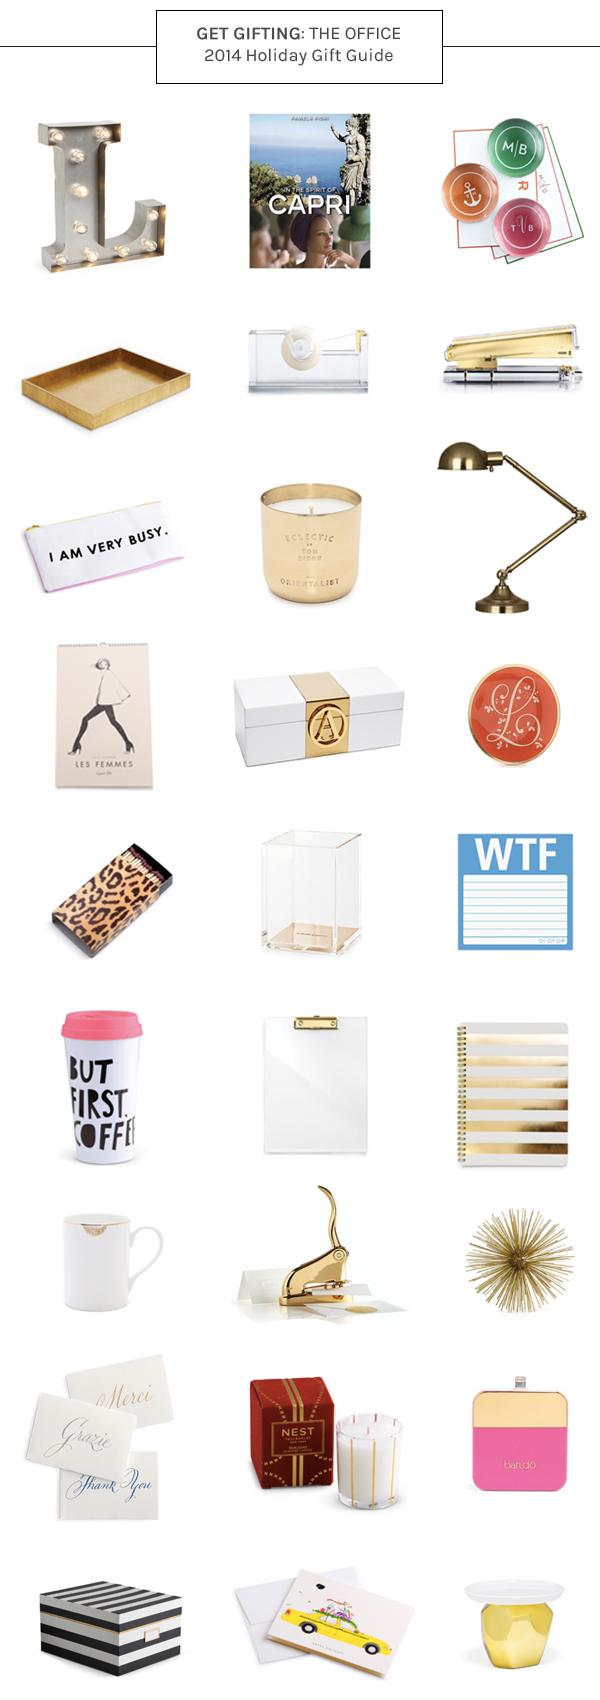 Gift guide for the office